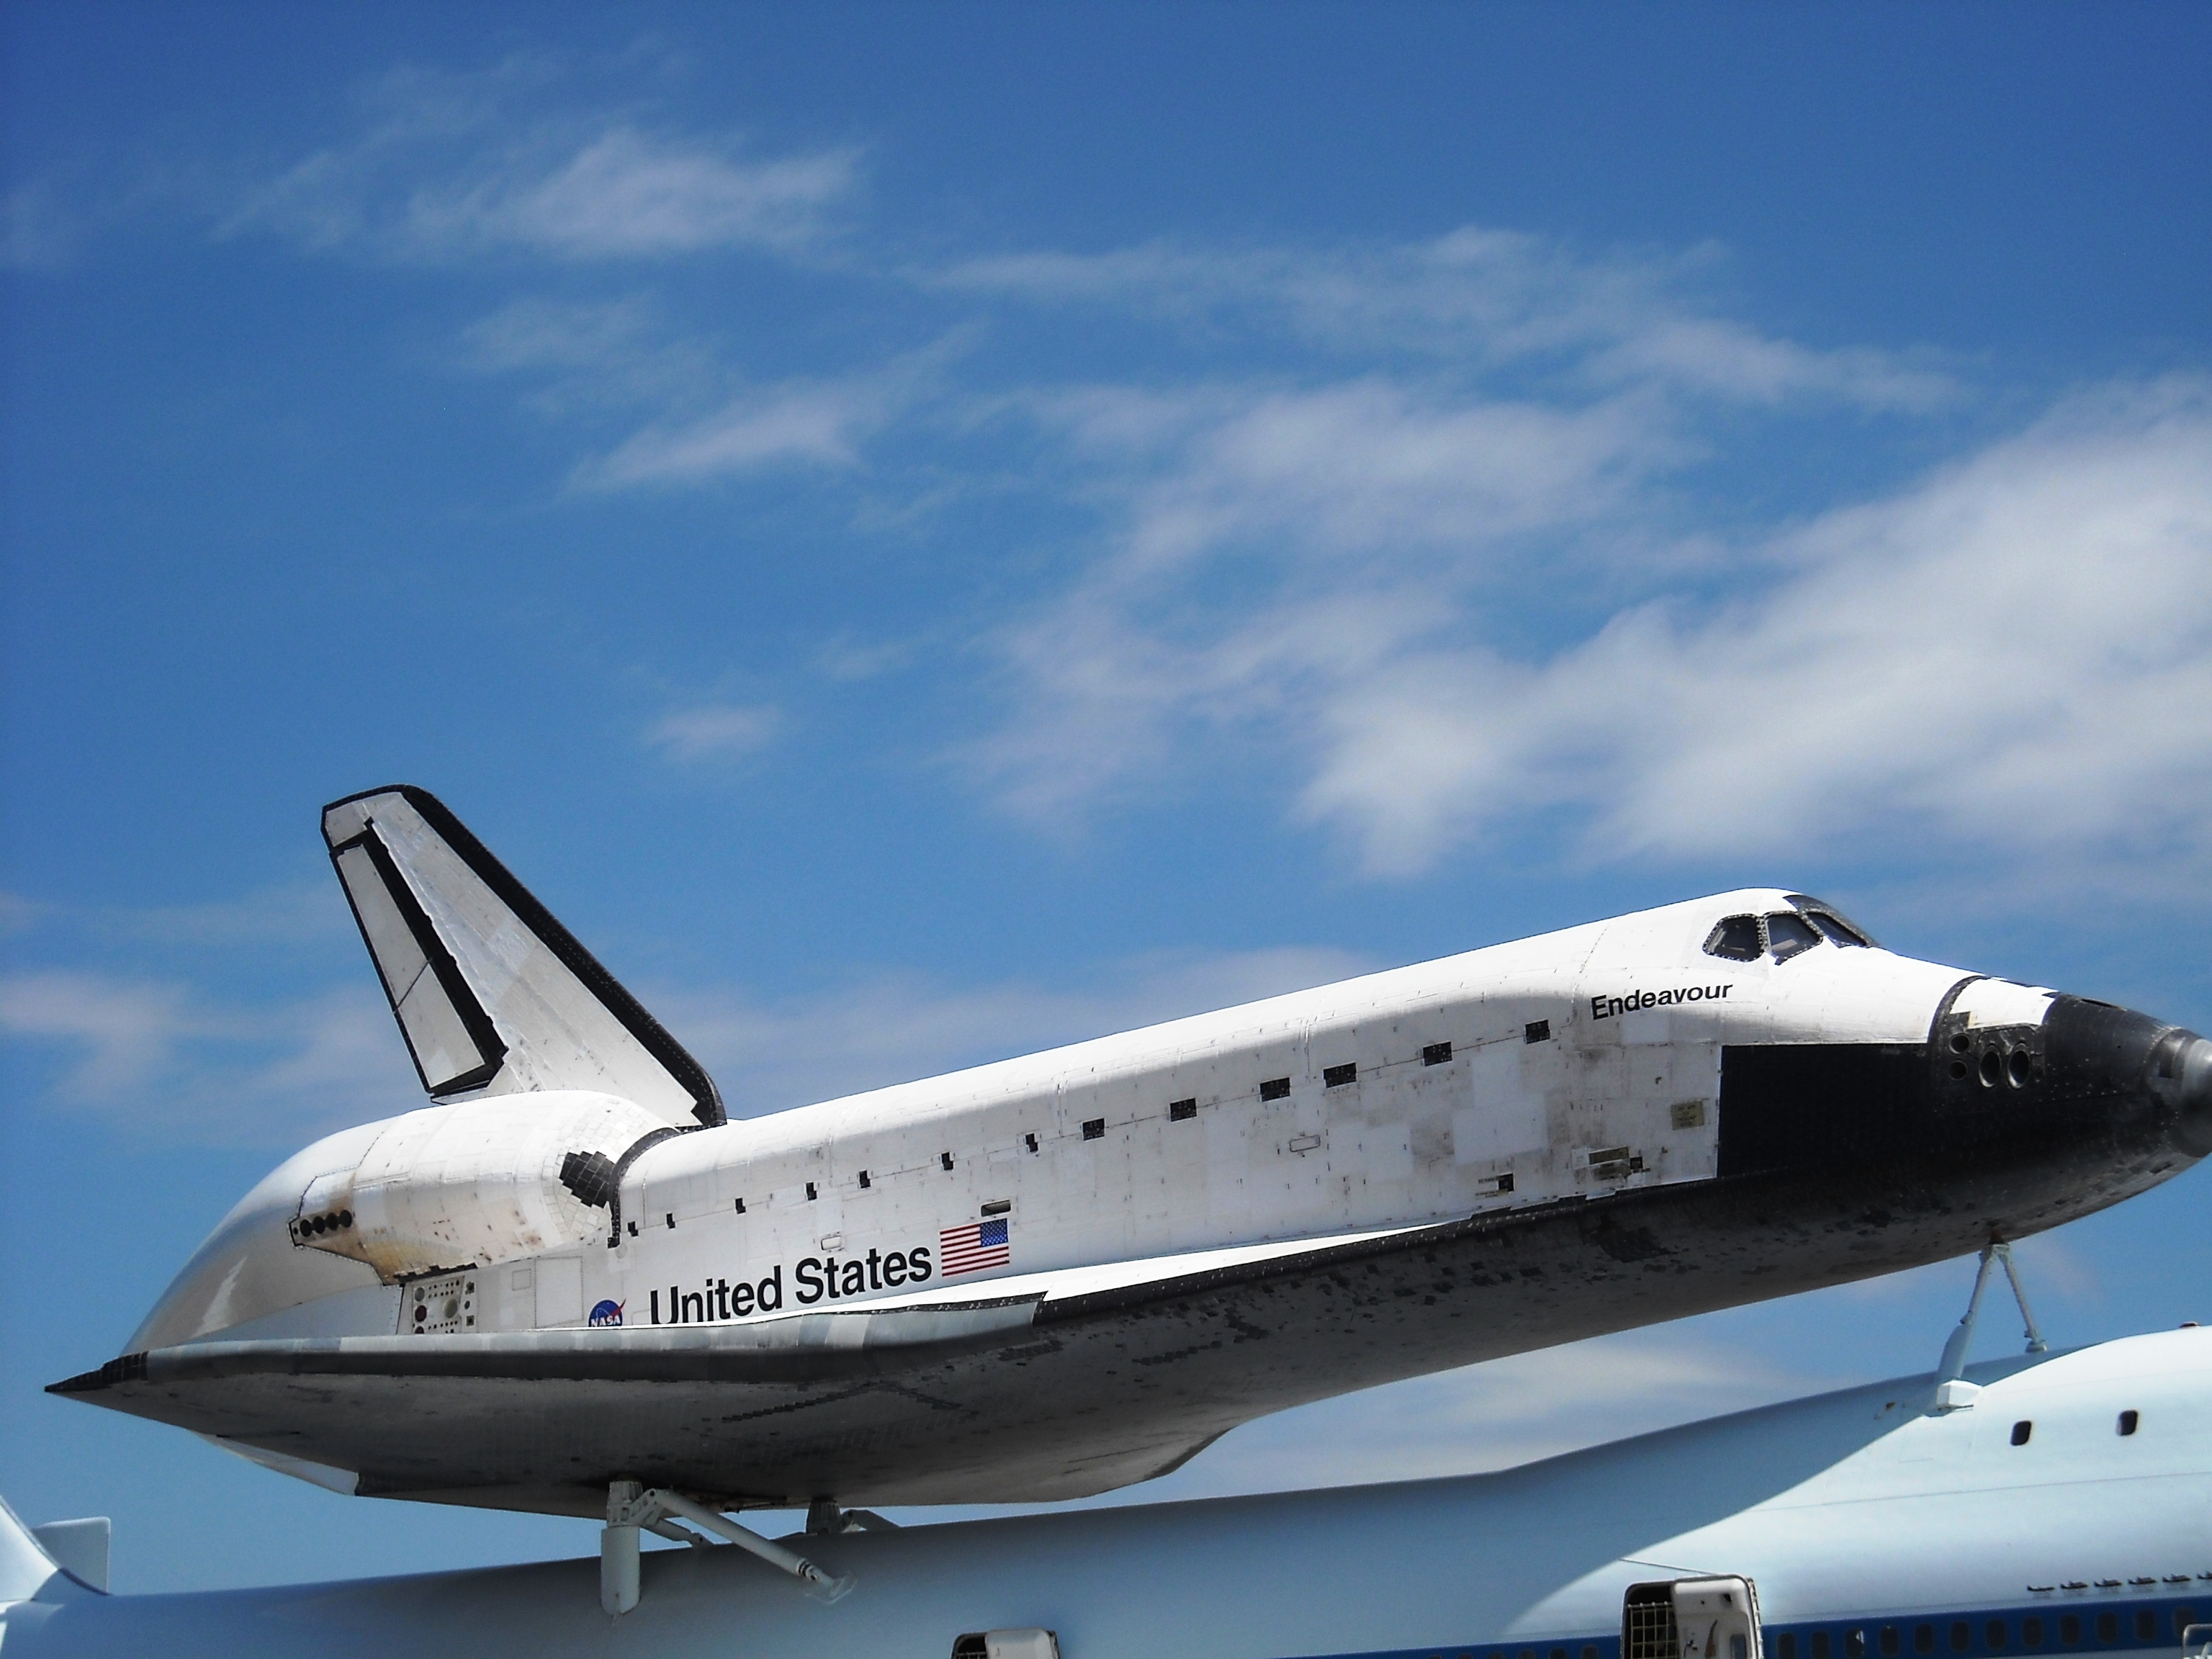 real space shuttle in milwuakee - photo #19